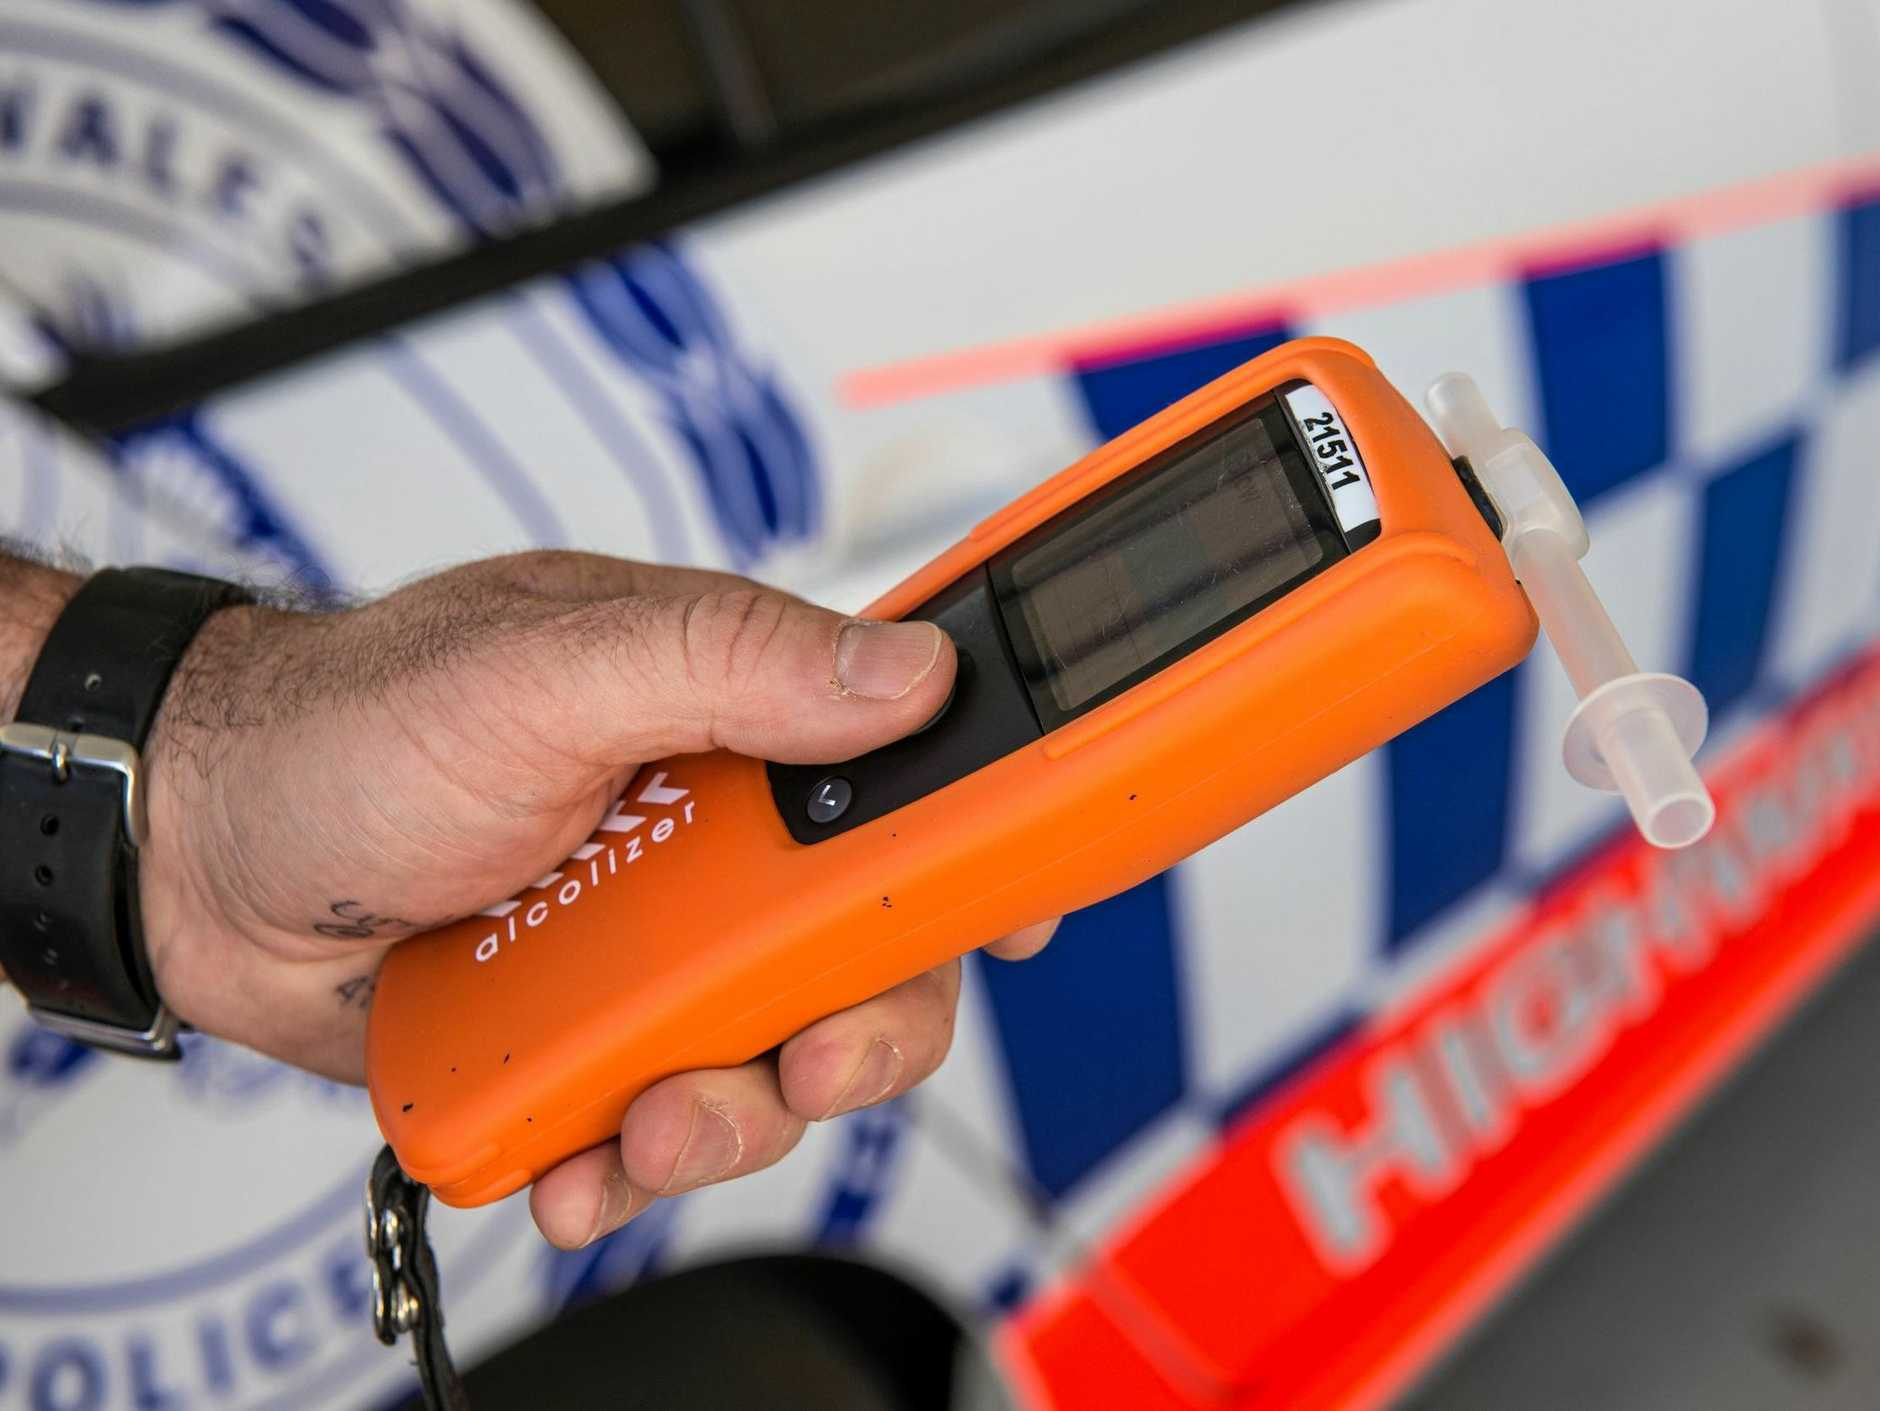 NSW police breath testing drink driver. 07 October 2016